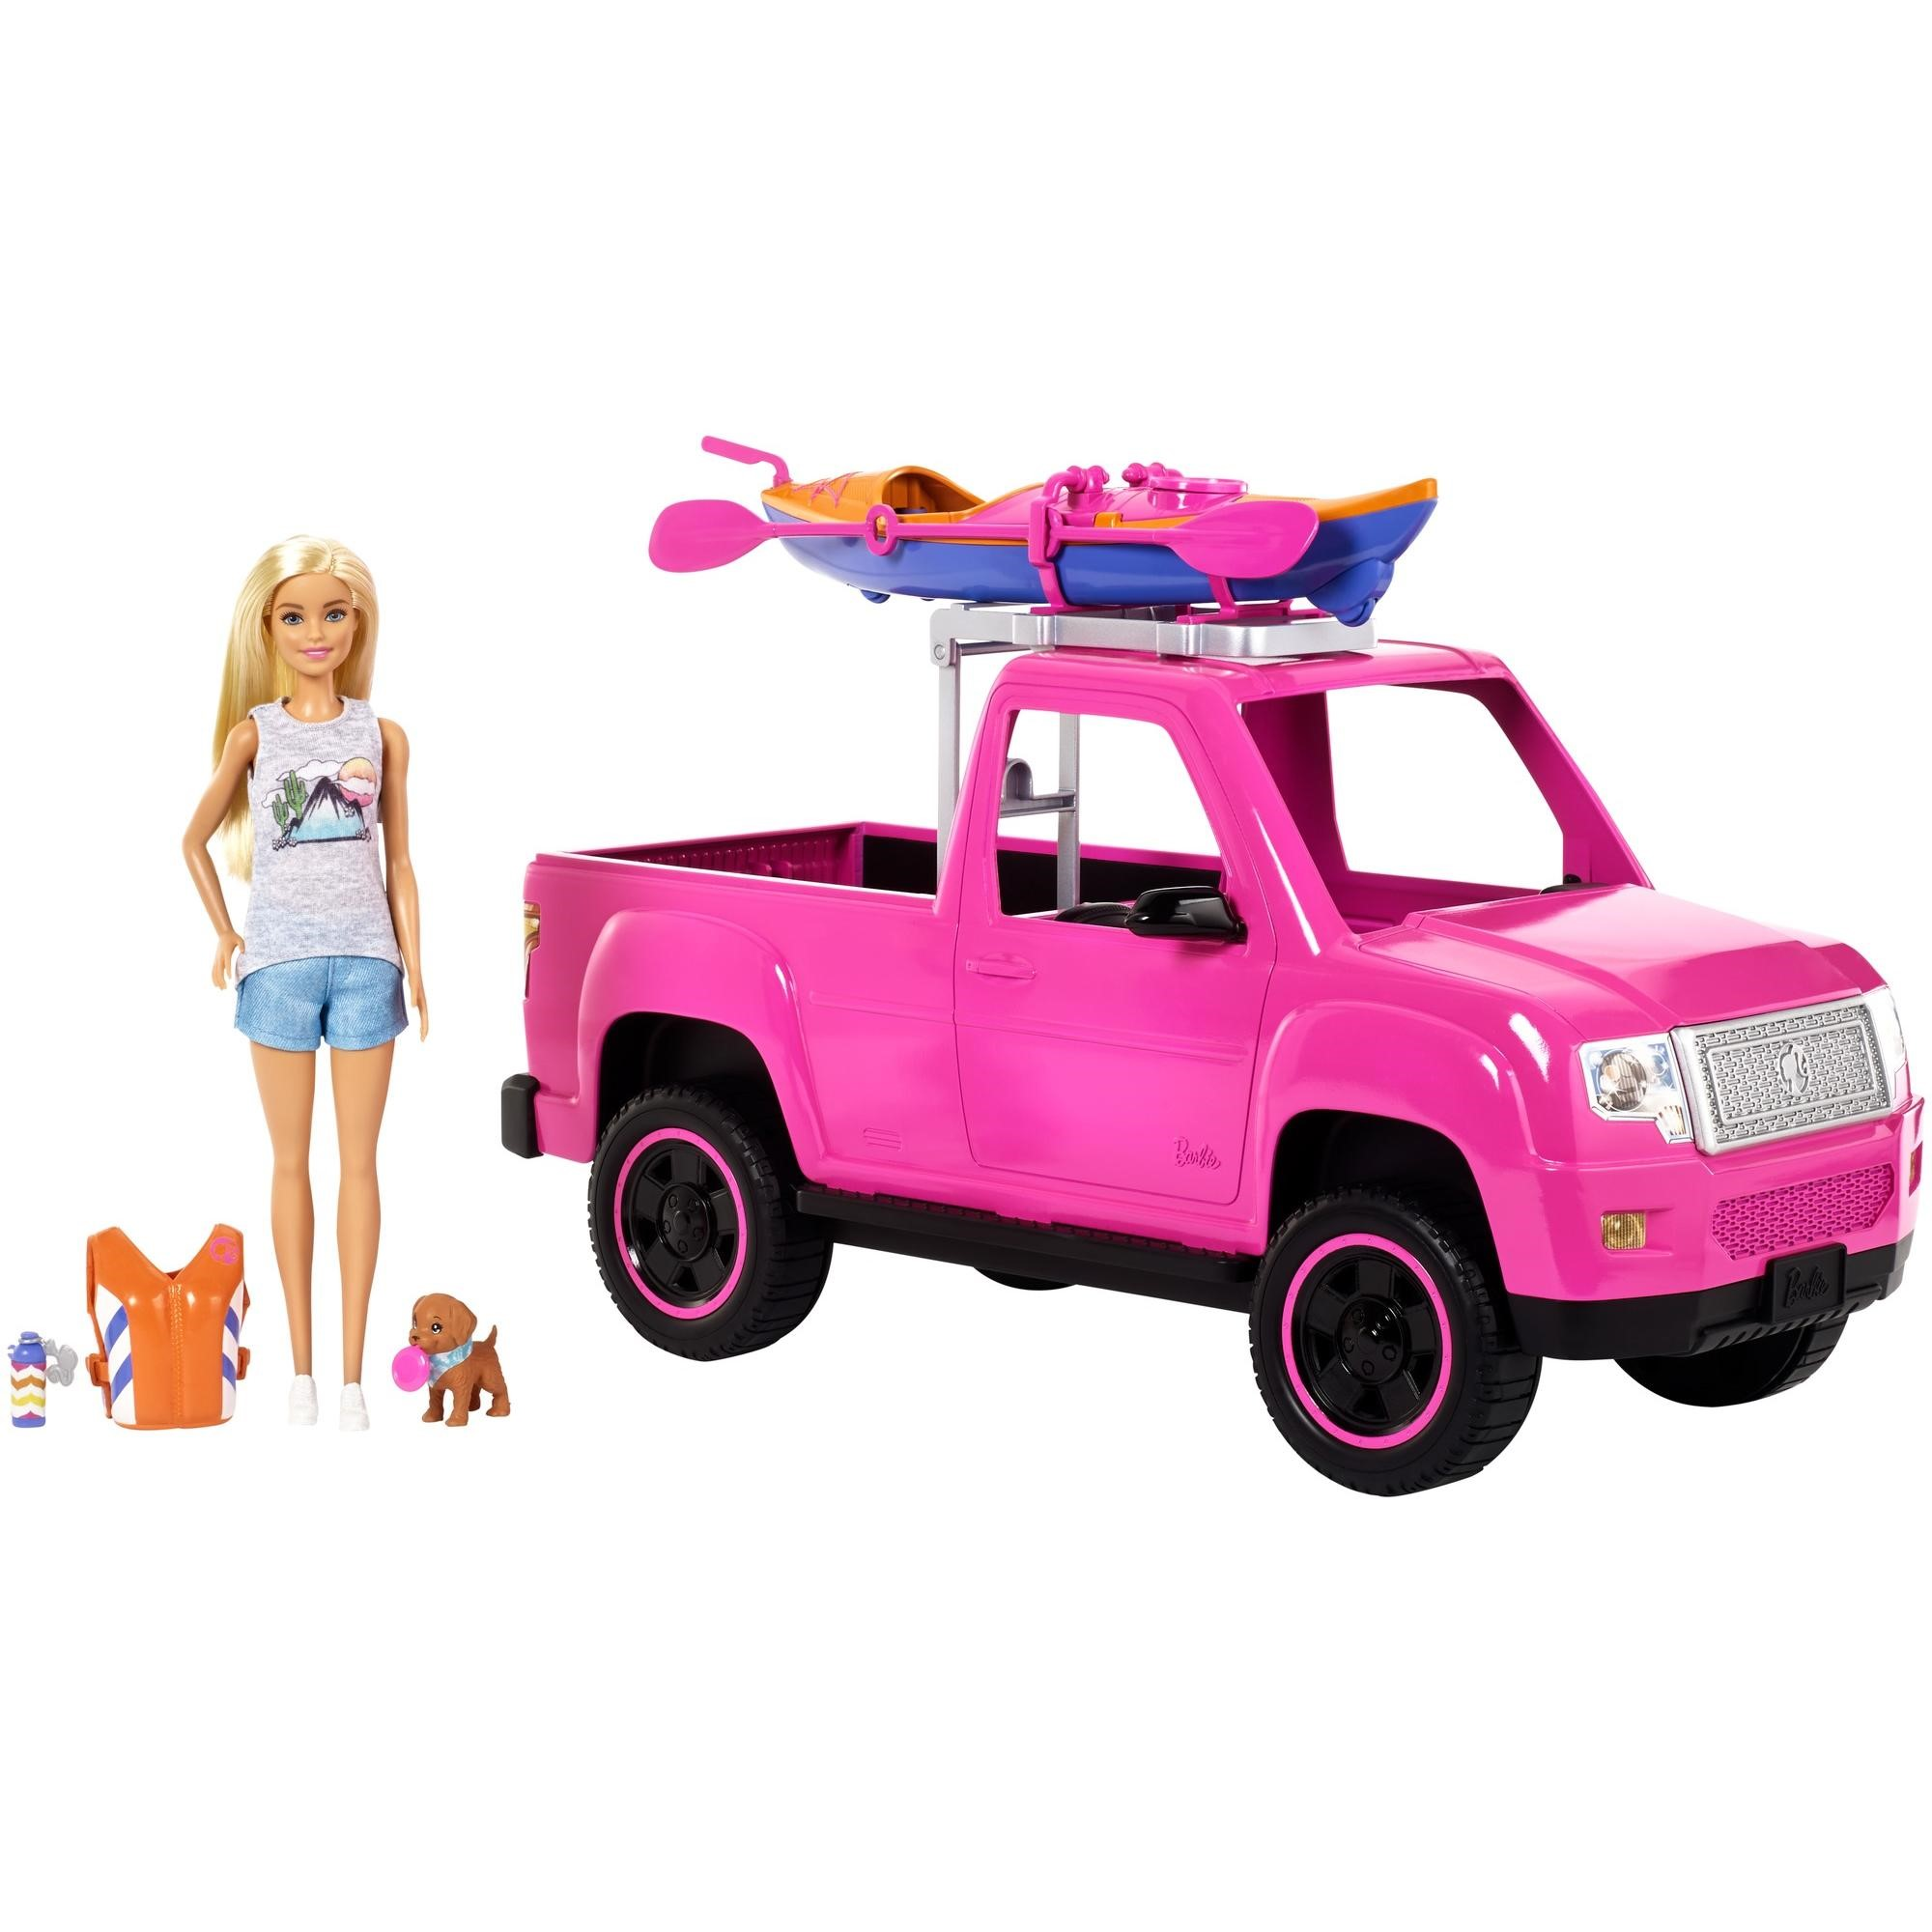 Barbie Camping Fun Doll, Pink Truck and Sea Kayak Adventure Playset